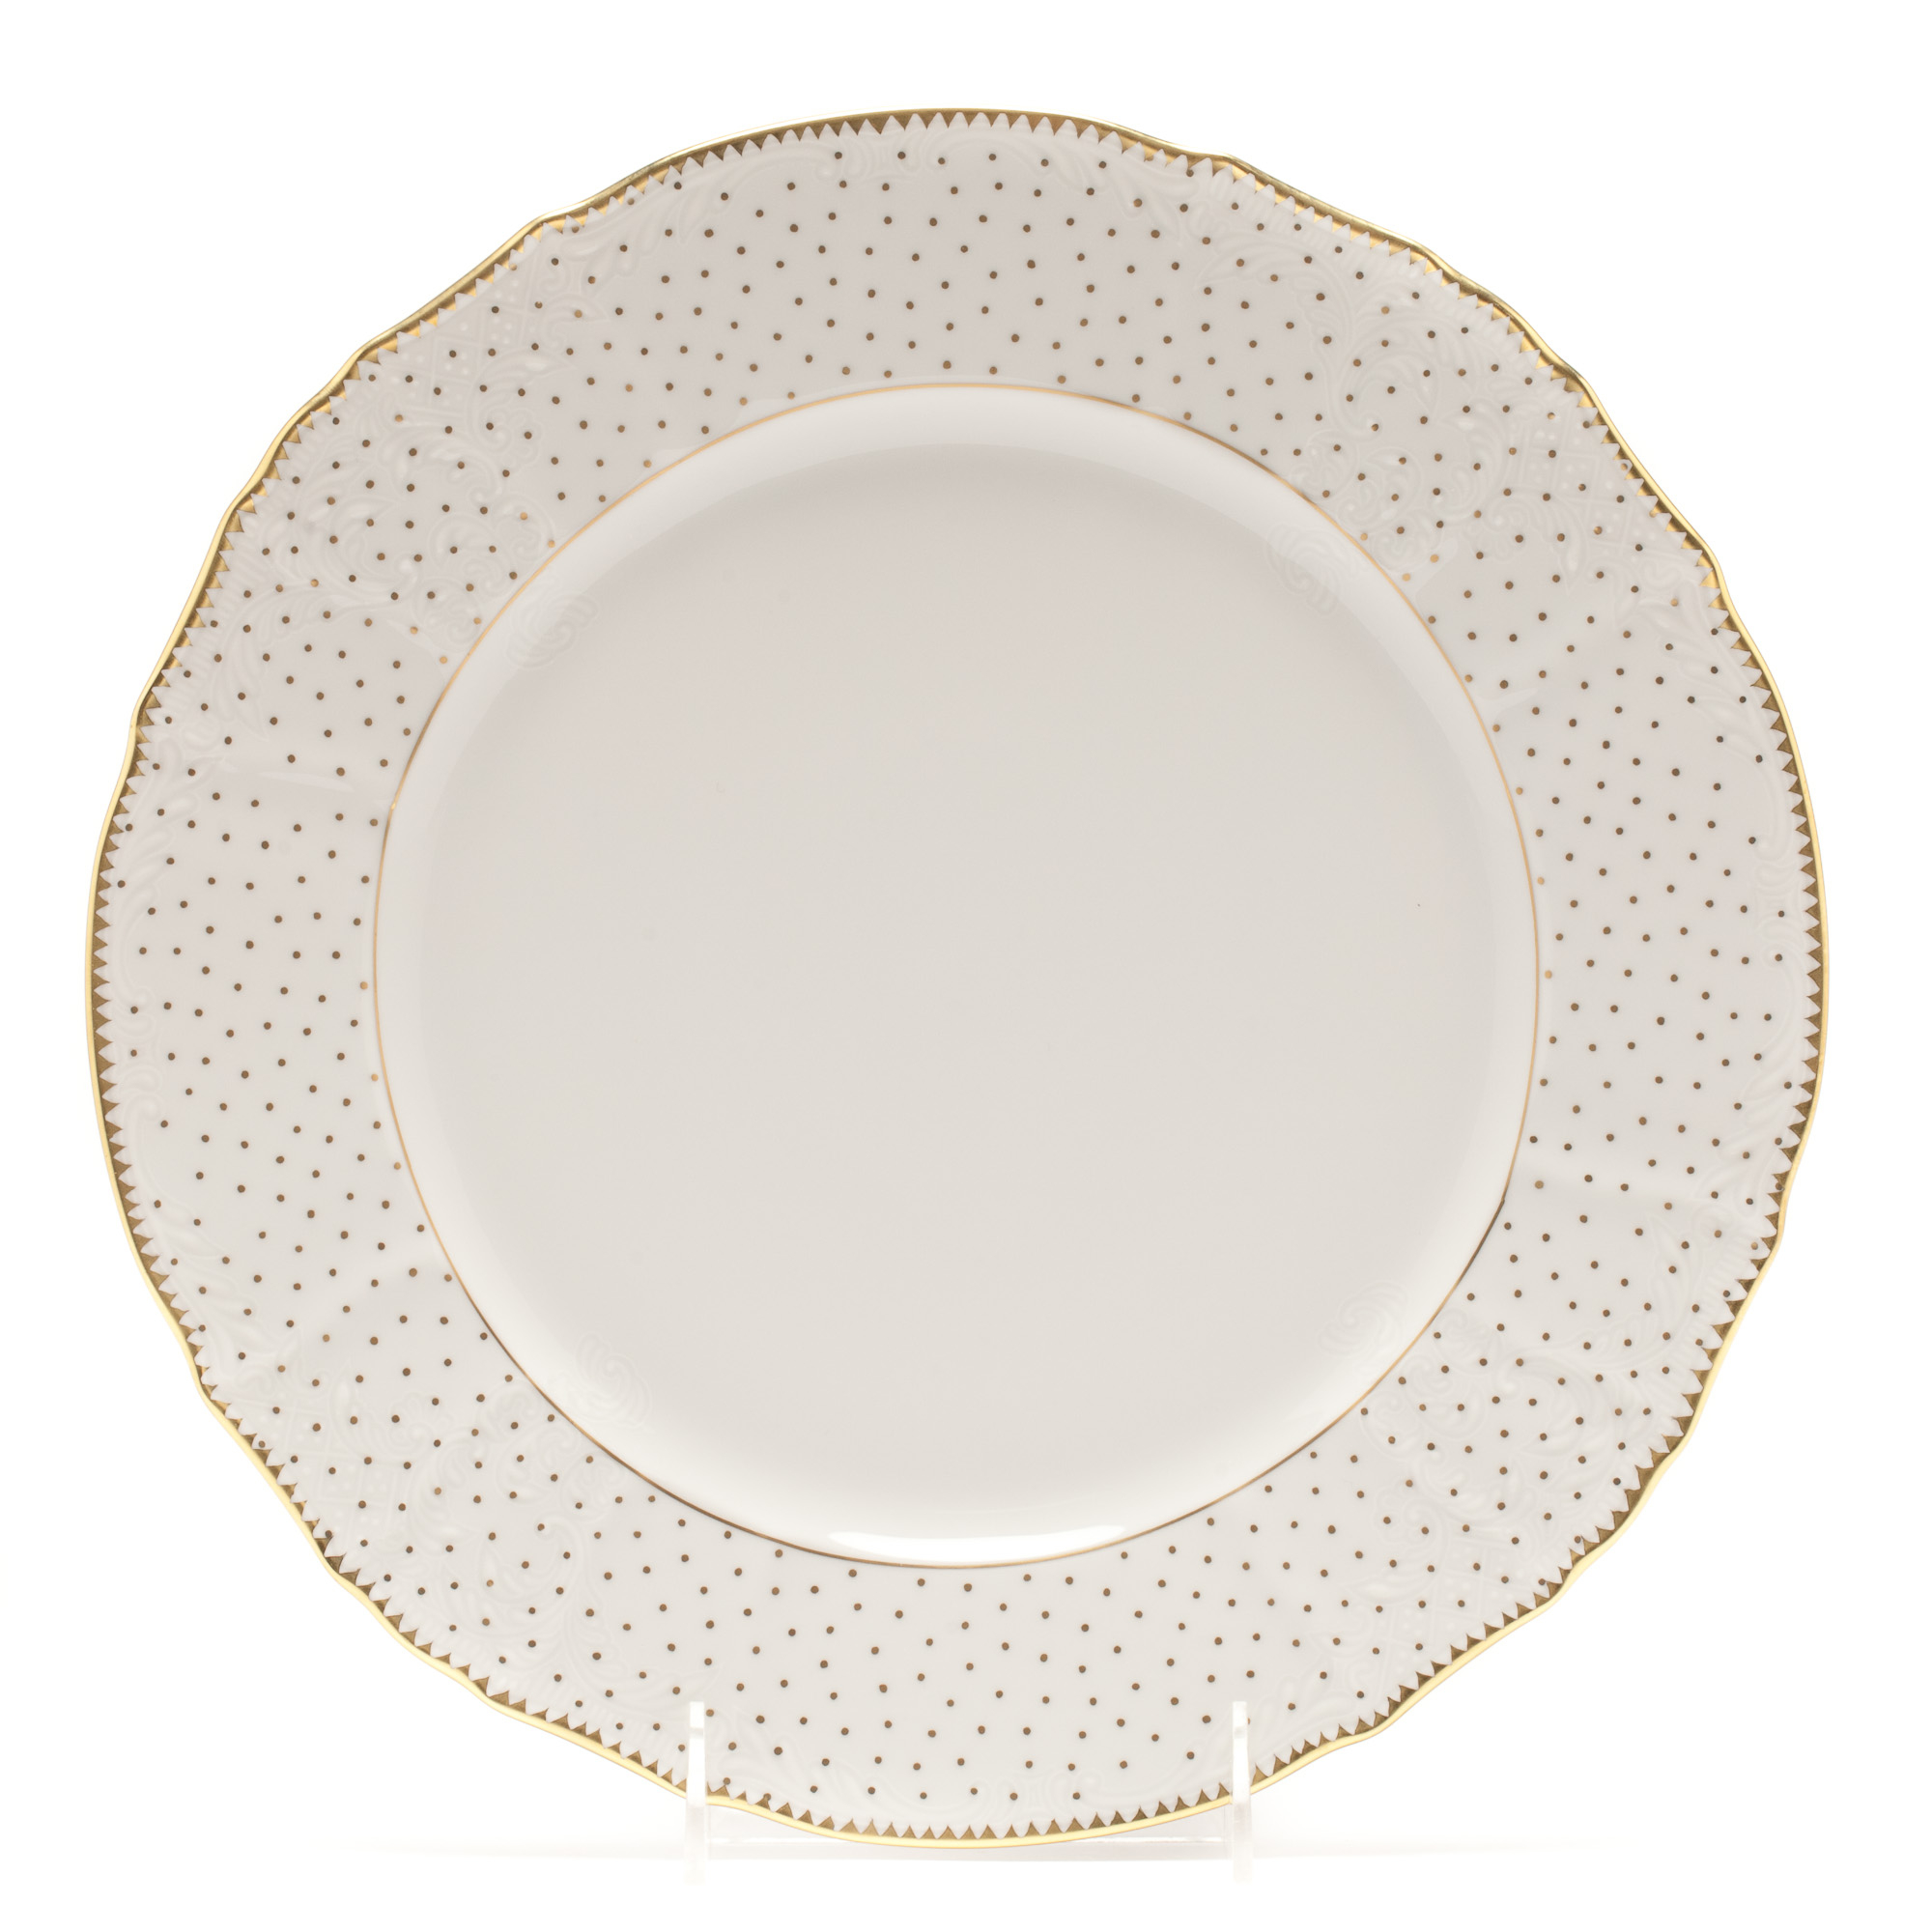 Anna Weatherley Simply Anna Polka Dot Charger Plate